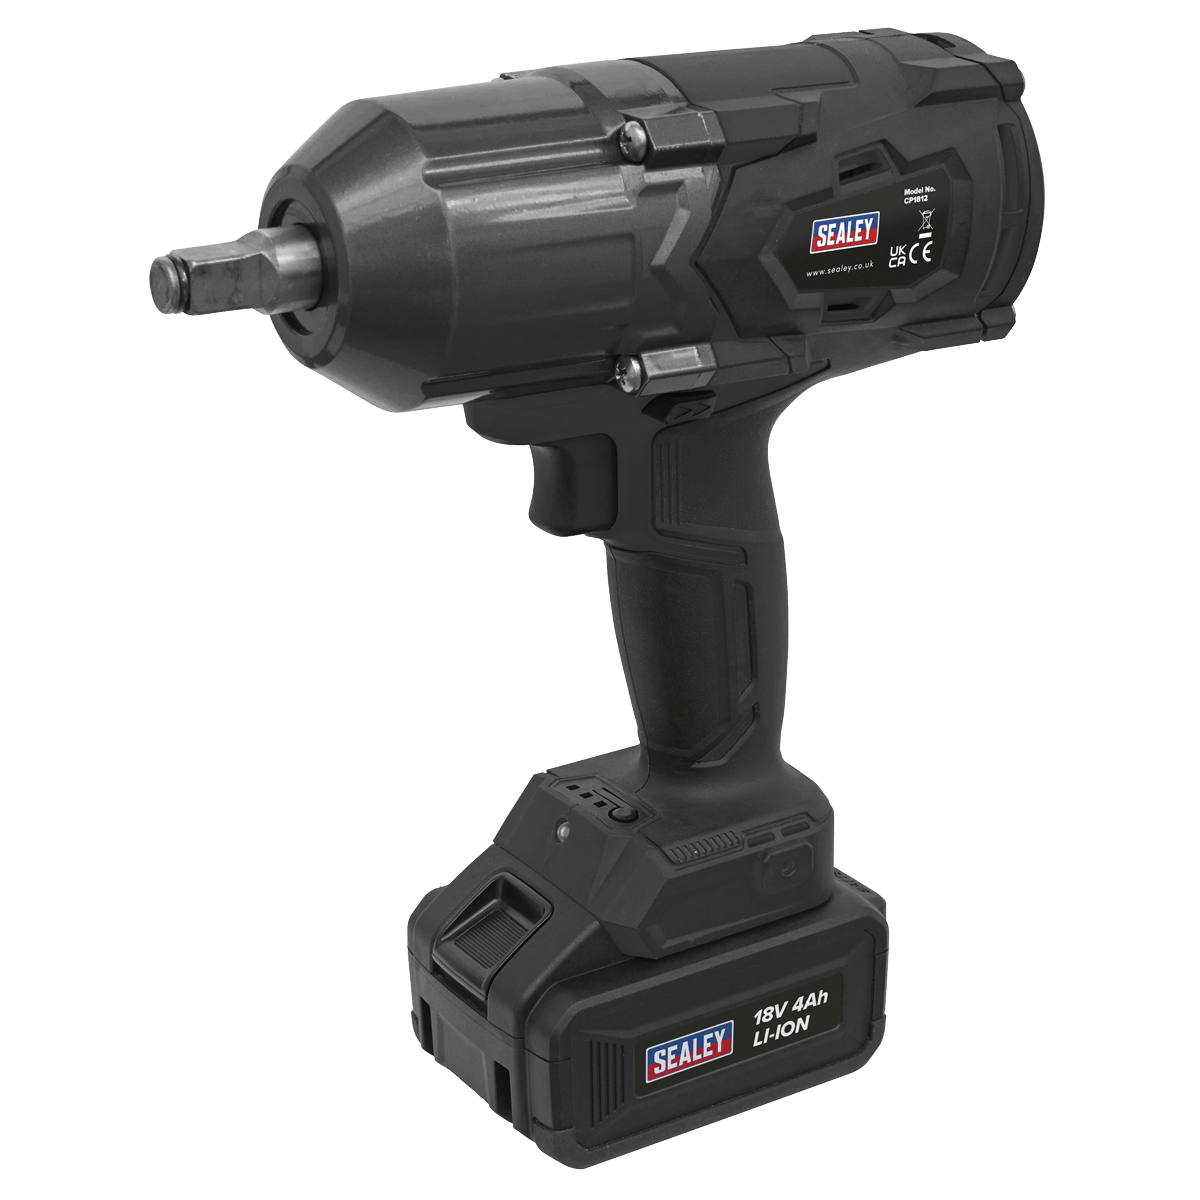 """Sealey Cordless Impact Wrench 18V 4Ah Lithium-ion 1/2""""Sq Drive CP1812"""